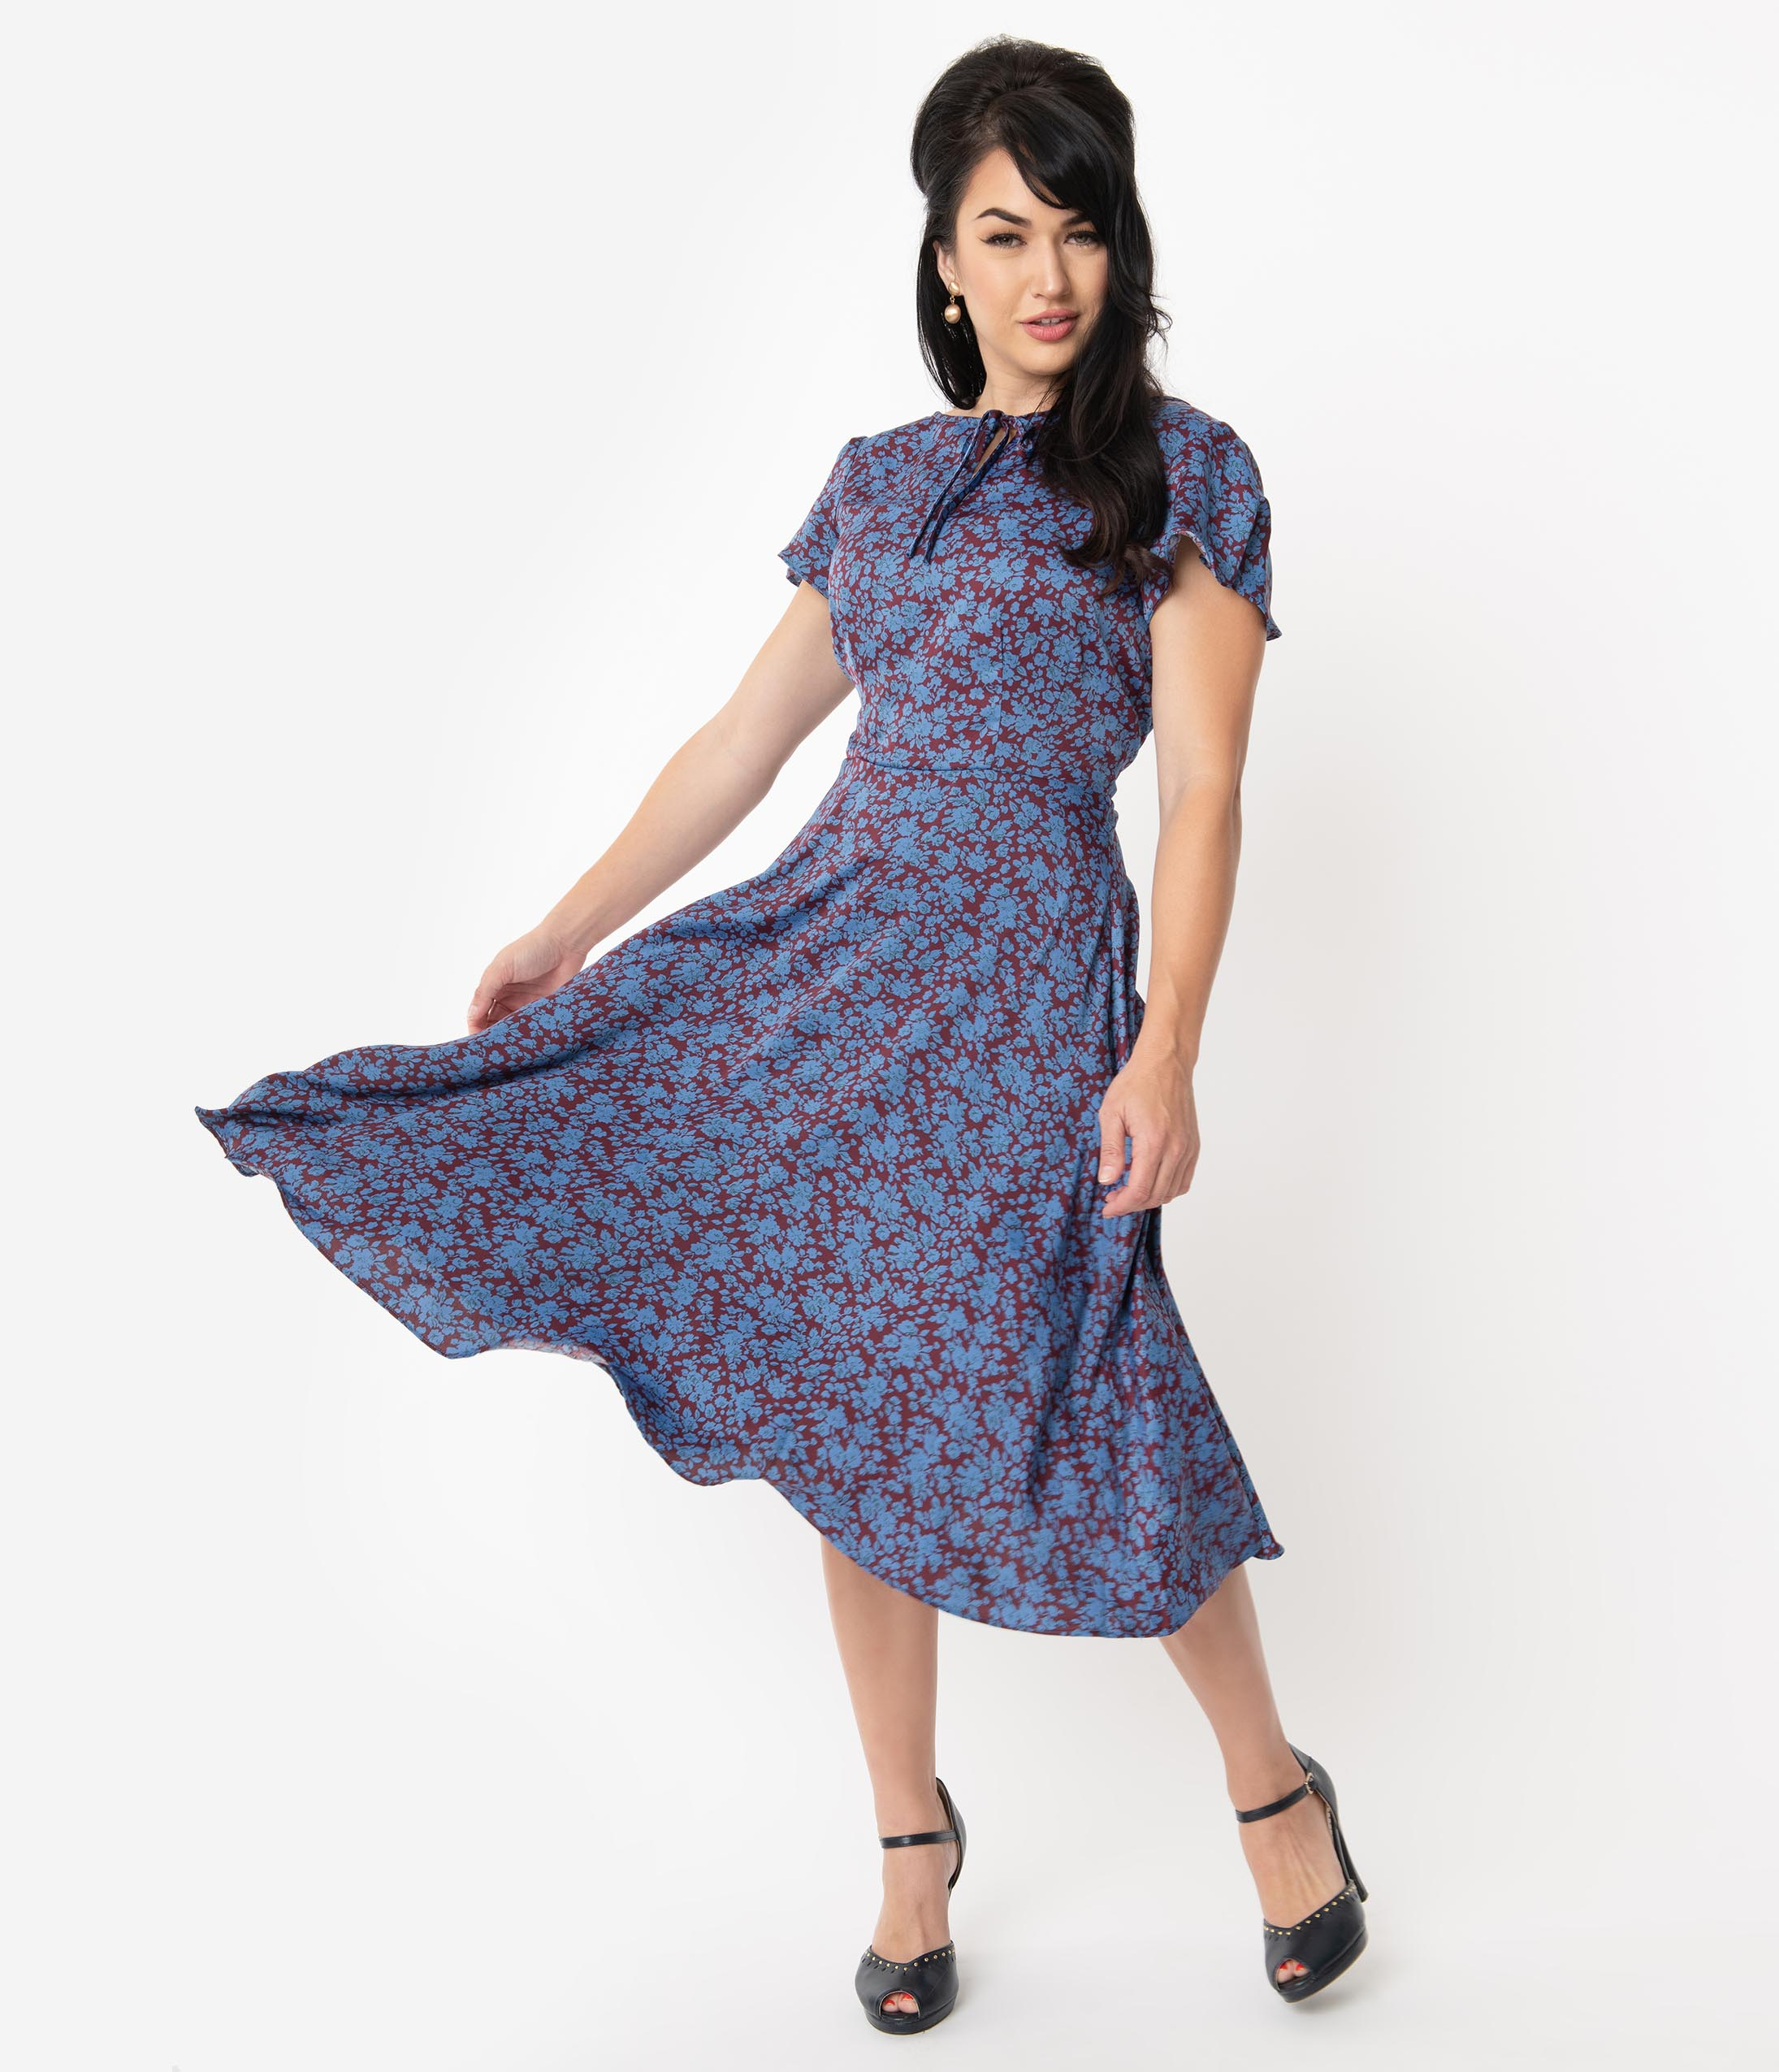 Swing Dance Clothing You Can Dance In Unique Vintage 1940S Style Maroon  Blue Floral Formosa Swing Dress $78.00 AT vintagedancer.com